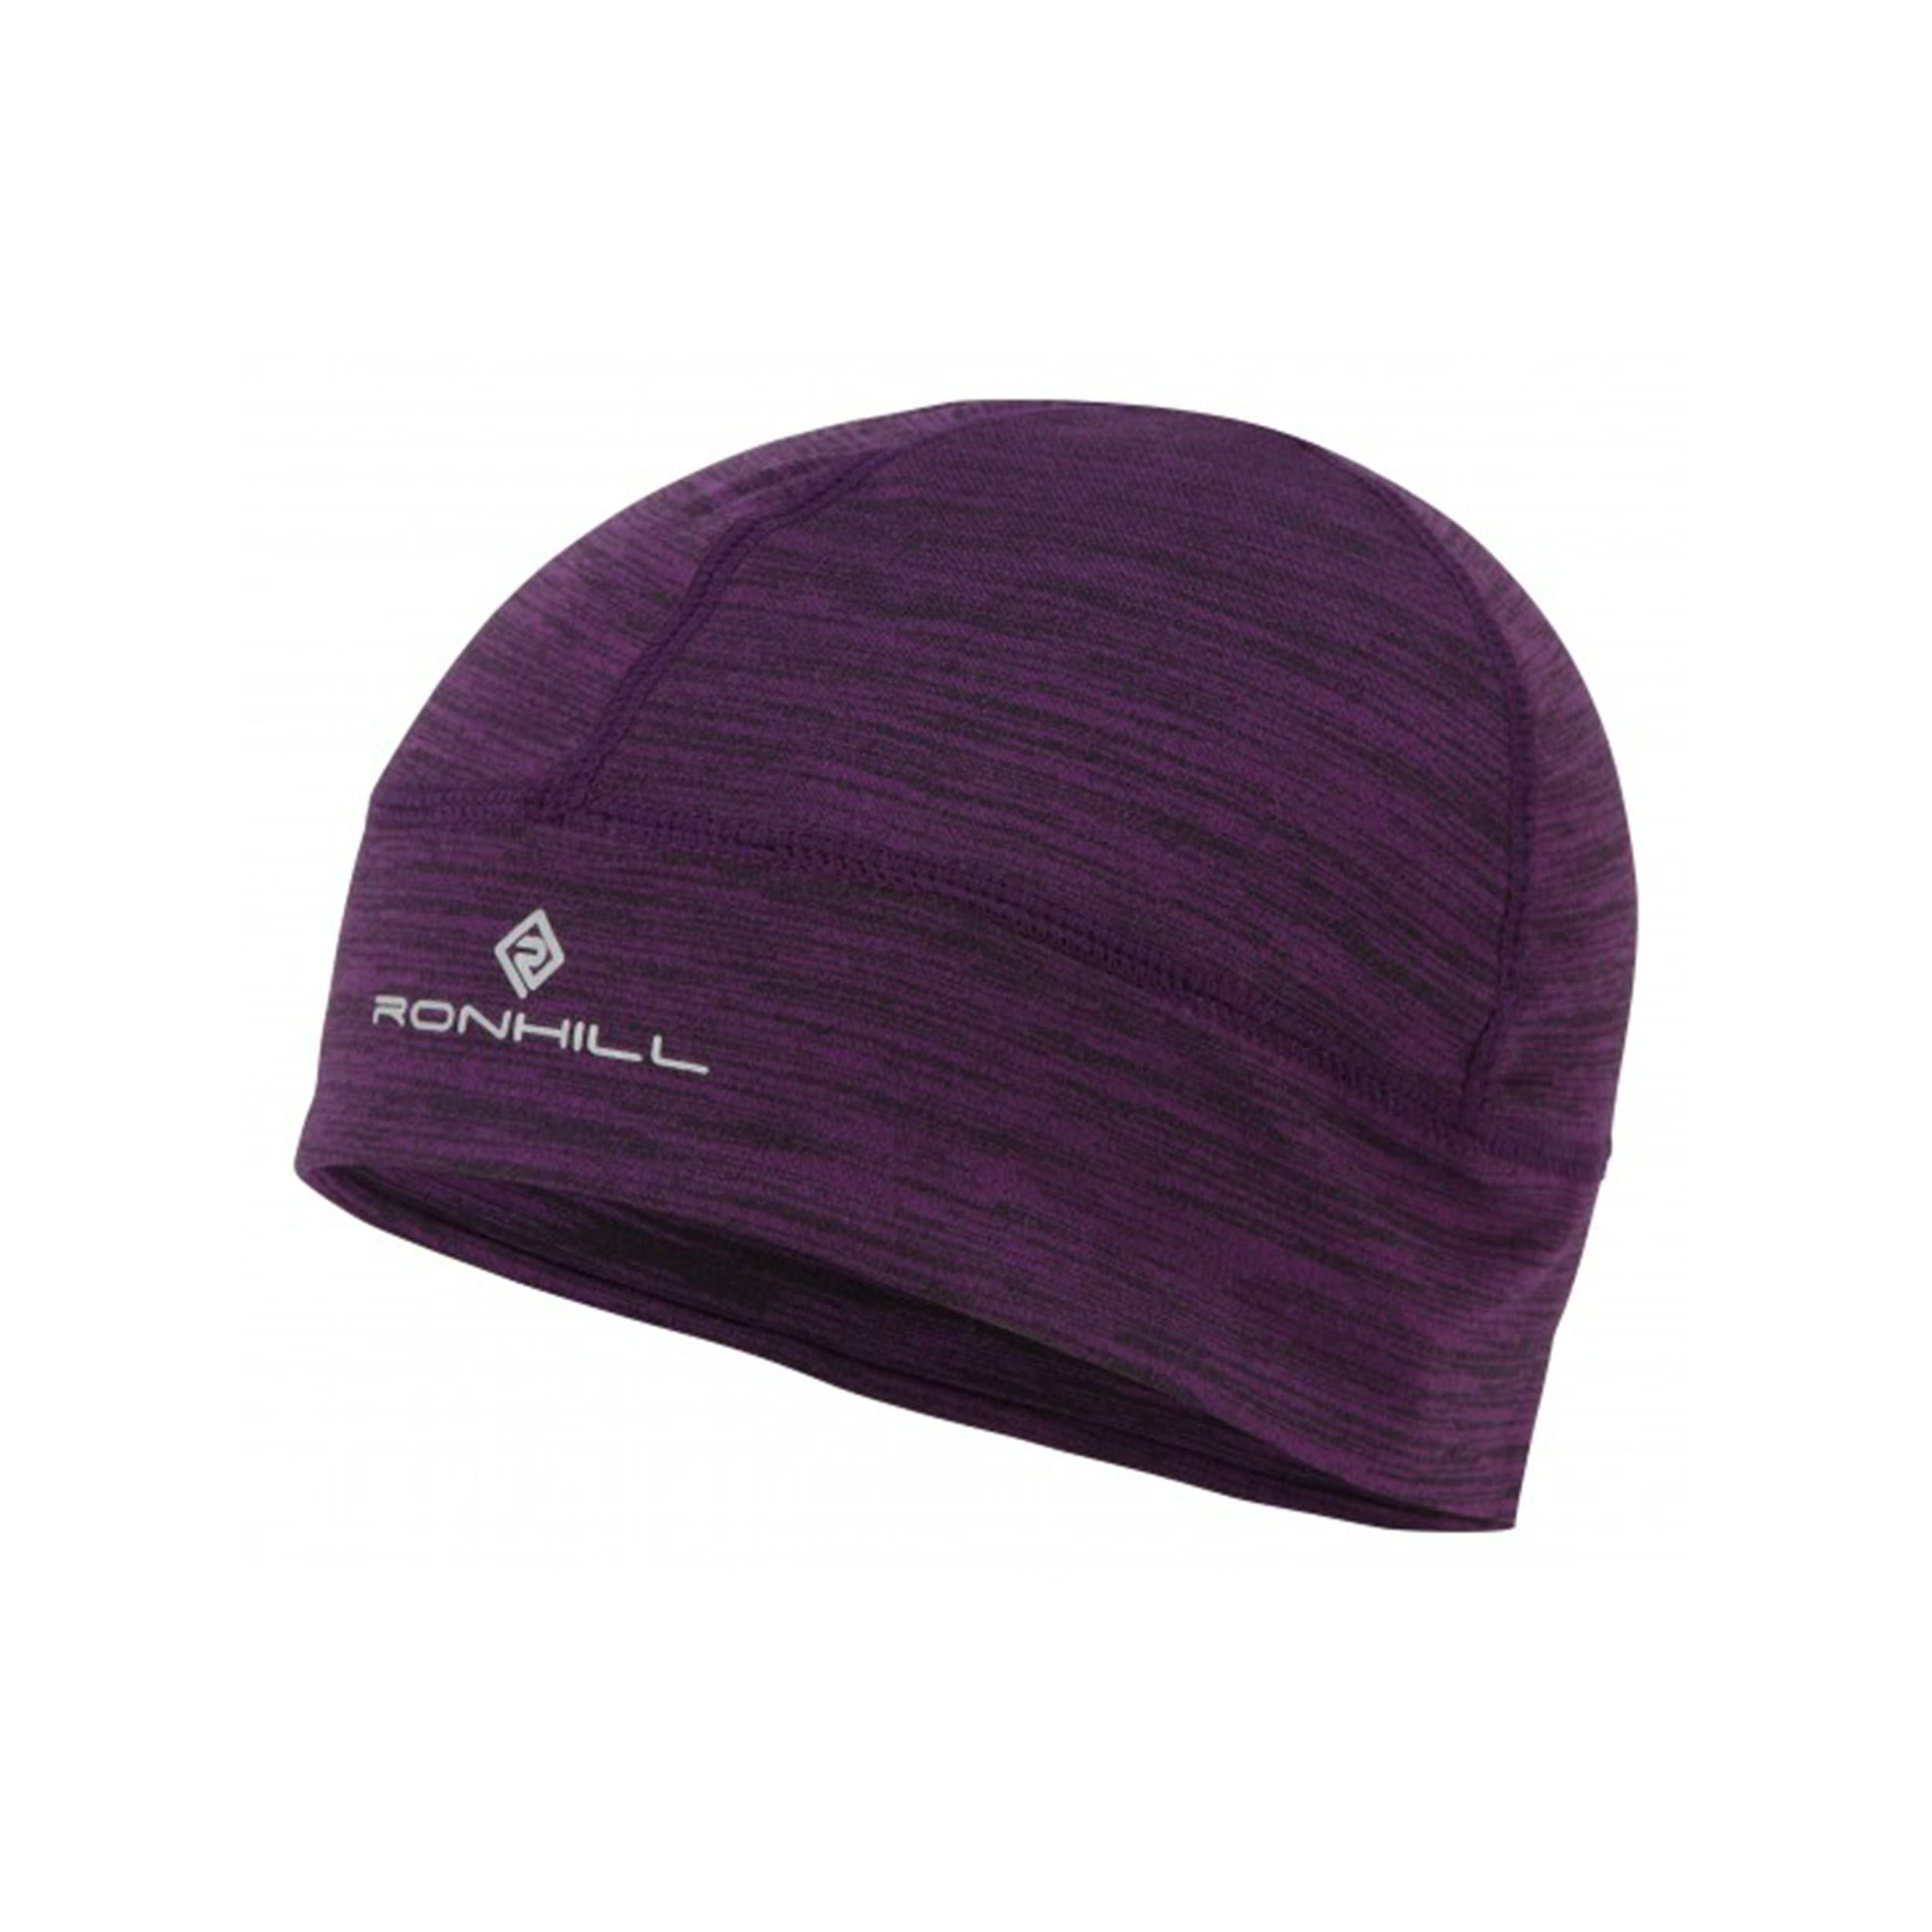 c1293ecd7e636 Details about Ronhill Victory Womens Purple Winter Warm Running Sports Head  Wear Beanie